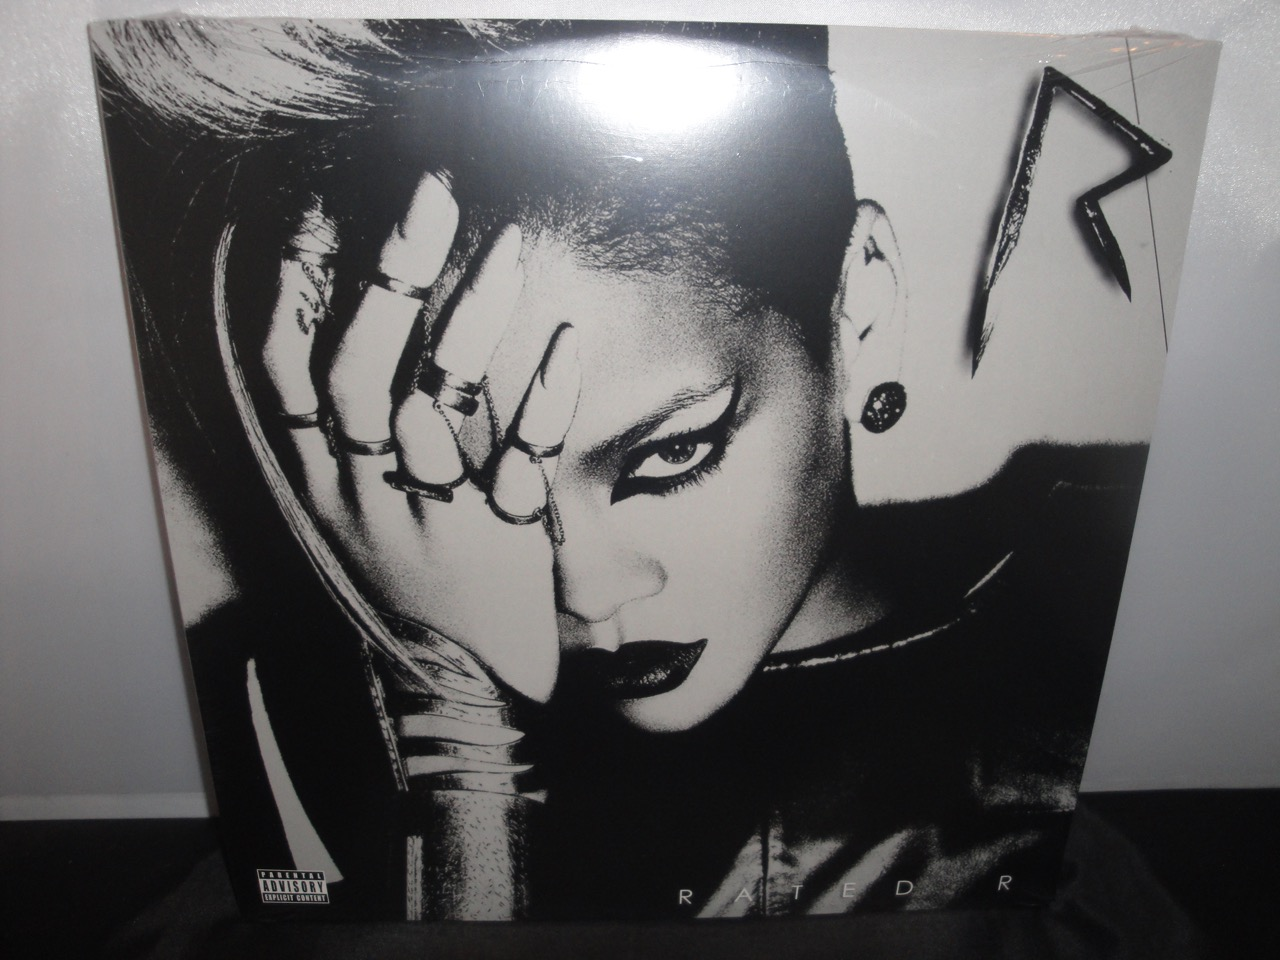 Rihanna Rated R Explicit Content Double Vinyl Lp